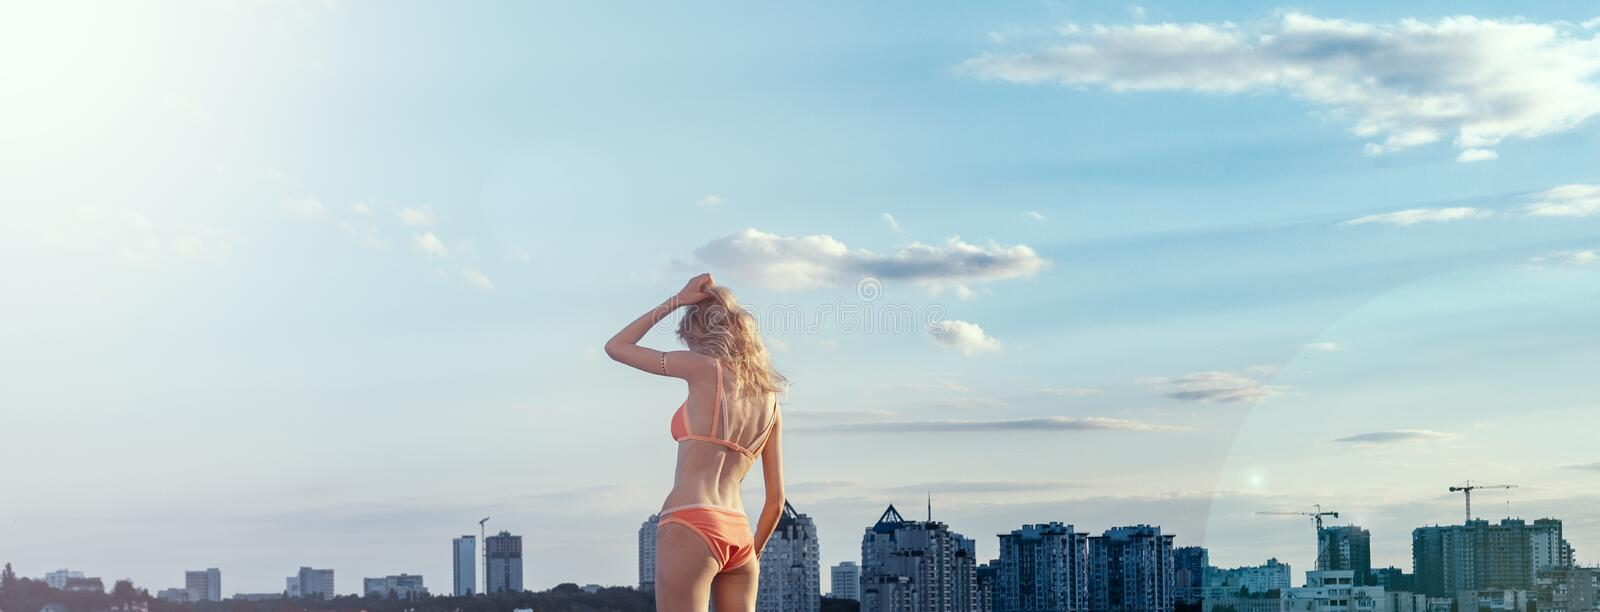 Blonde girl standing in coral swimsuit , on the background of city stock images